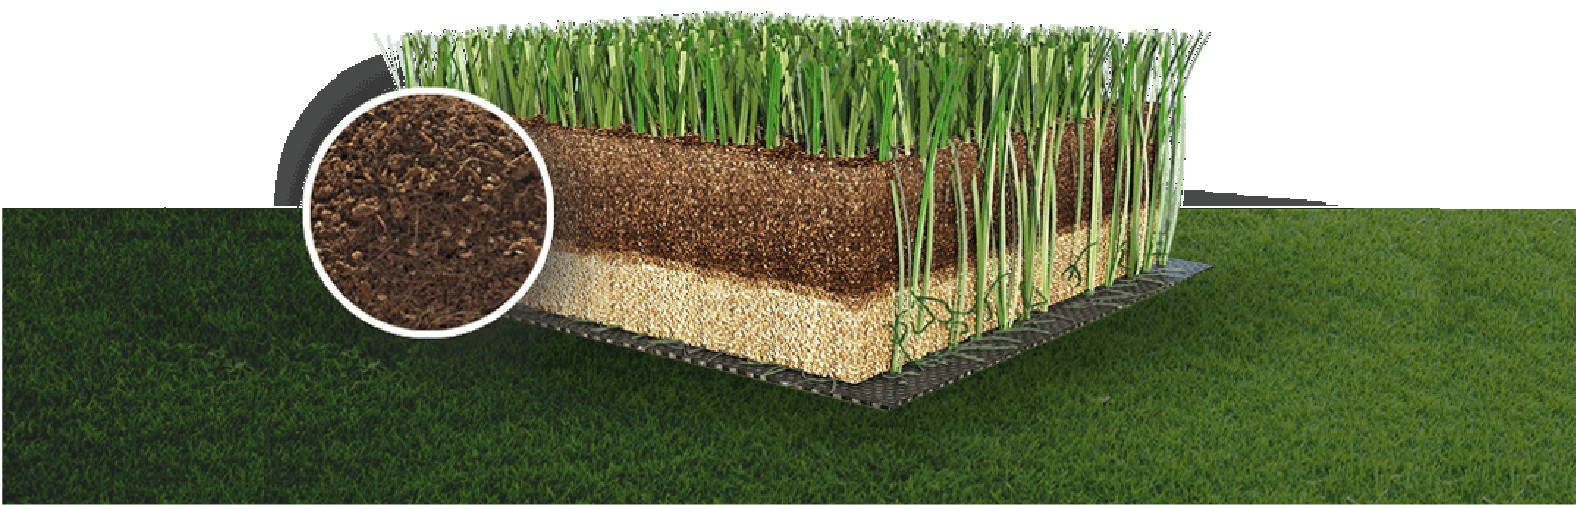 Synthetic Turf from Italgreen with ISO 9001 certificate